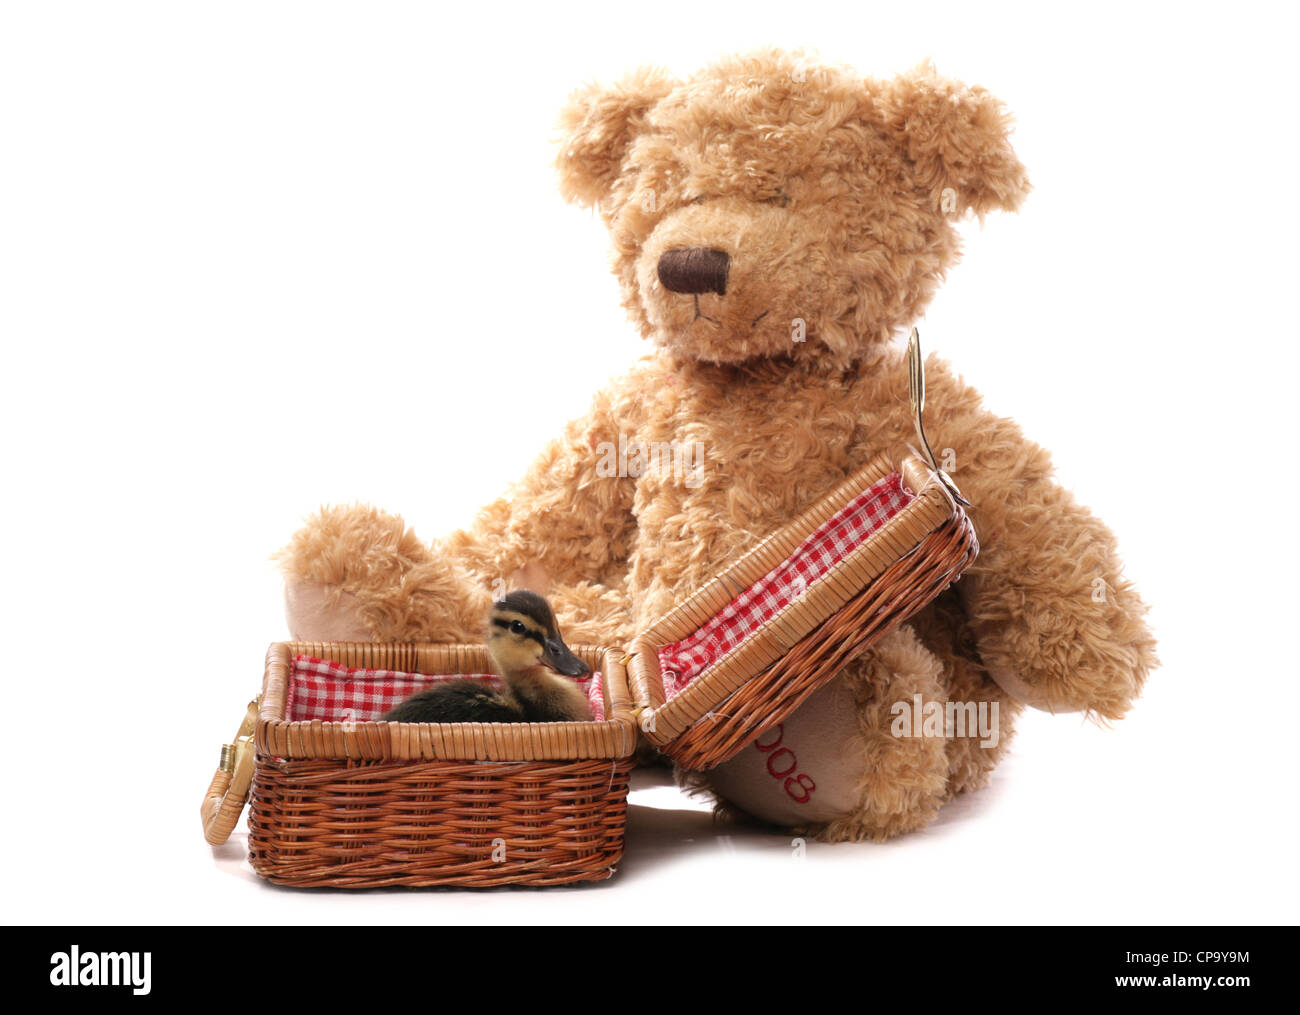 Mallard Anas platyrhynchos Single juvinille sittinga basket with a soft toy bear Studio, UK - Stock Image